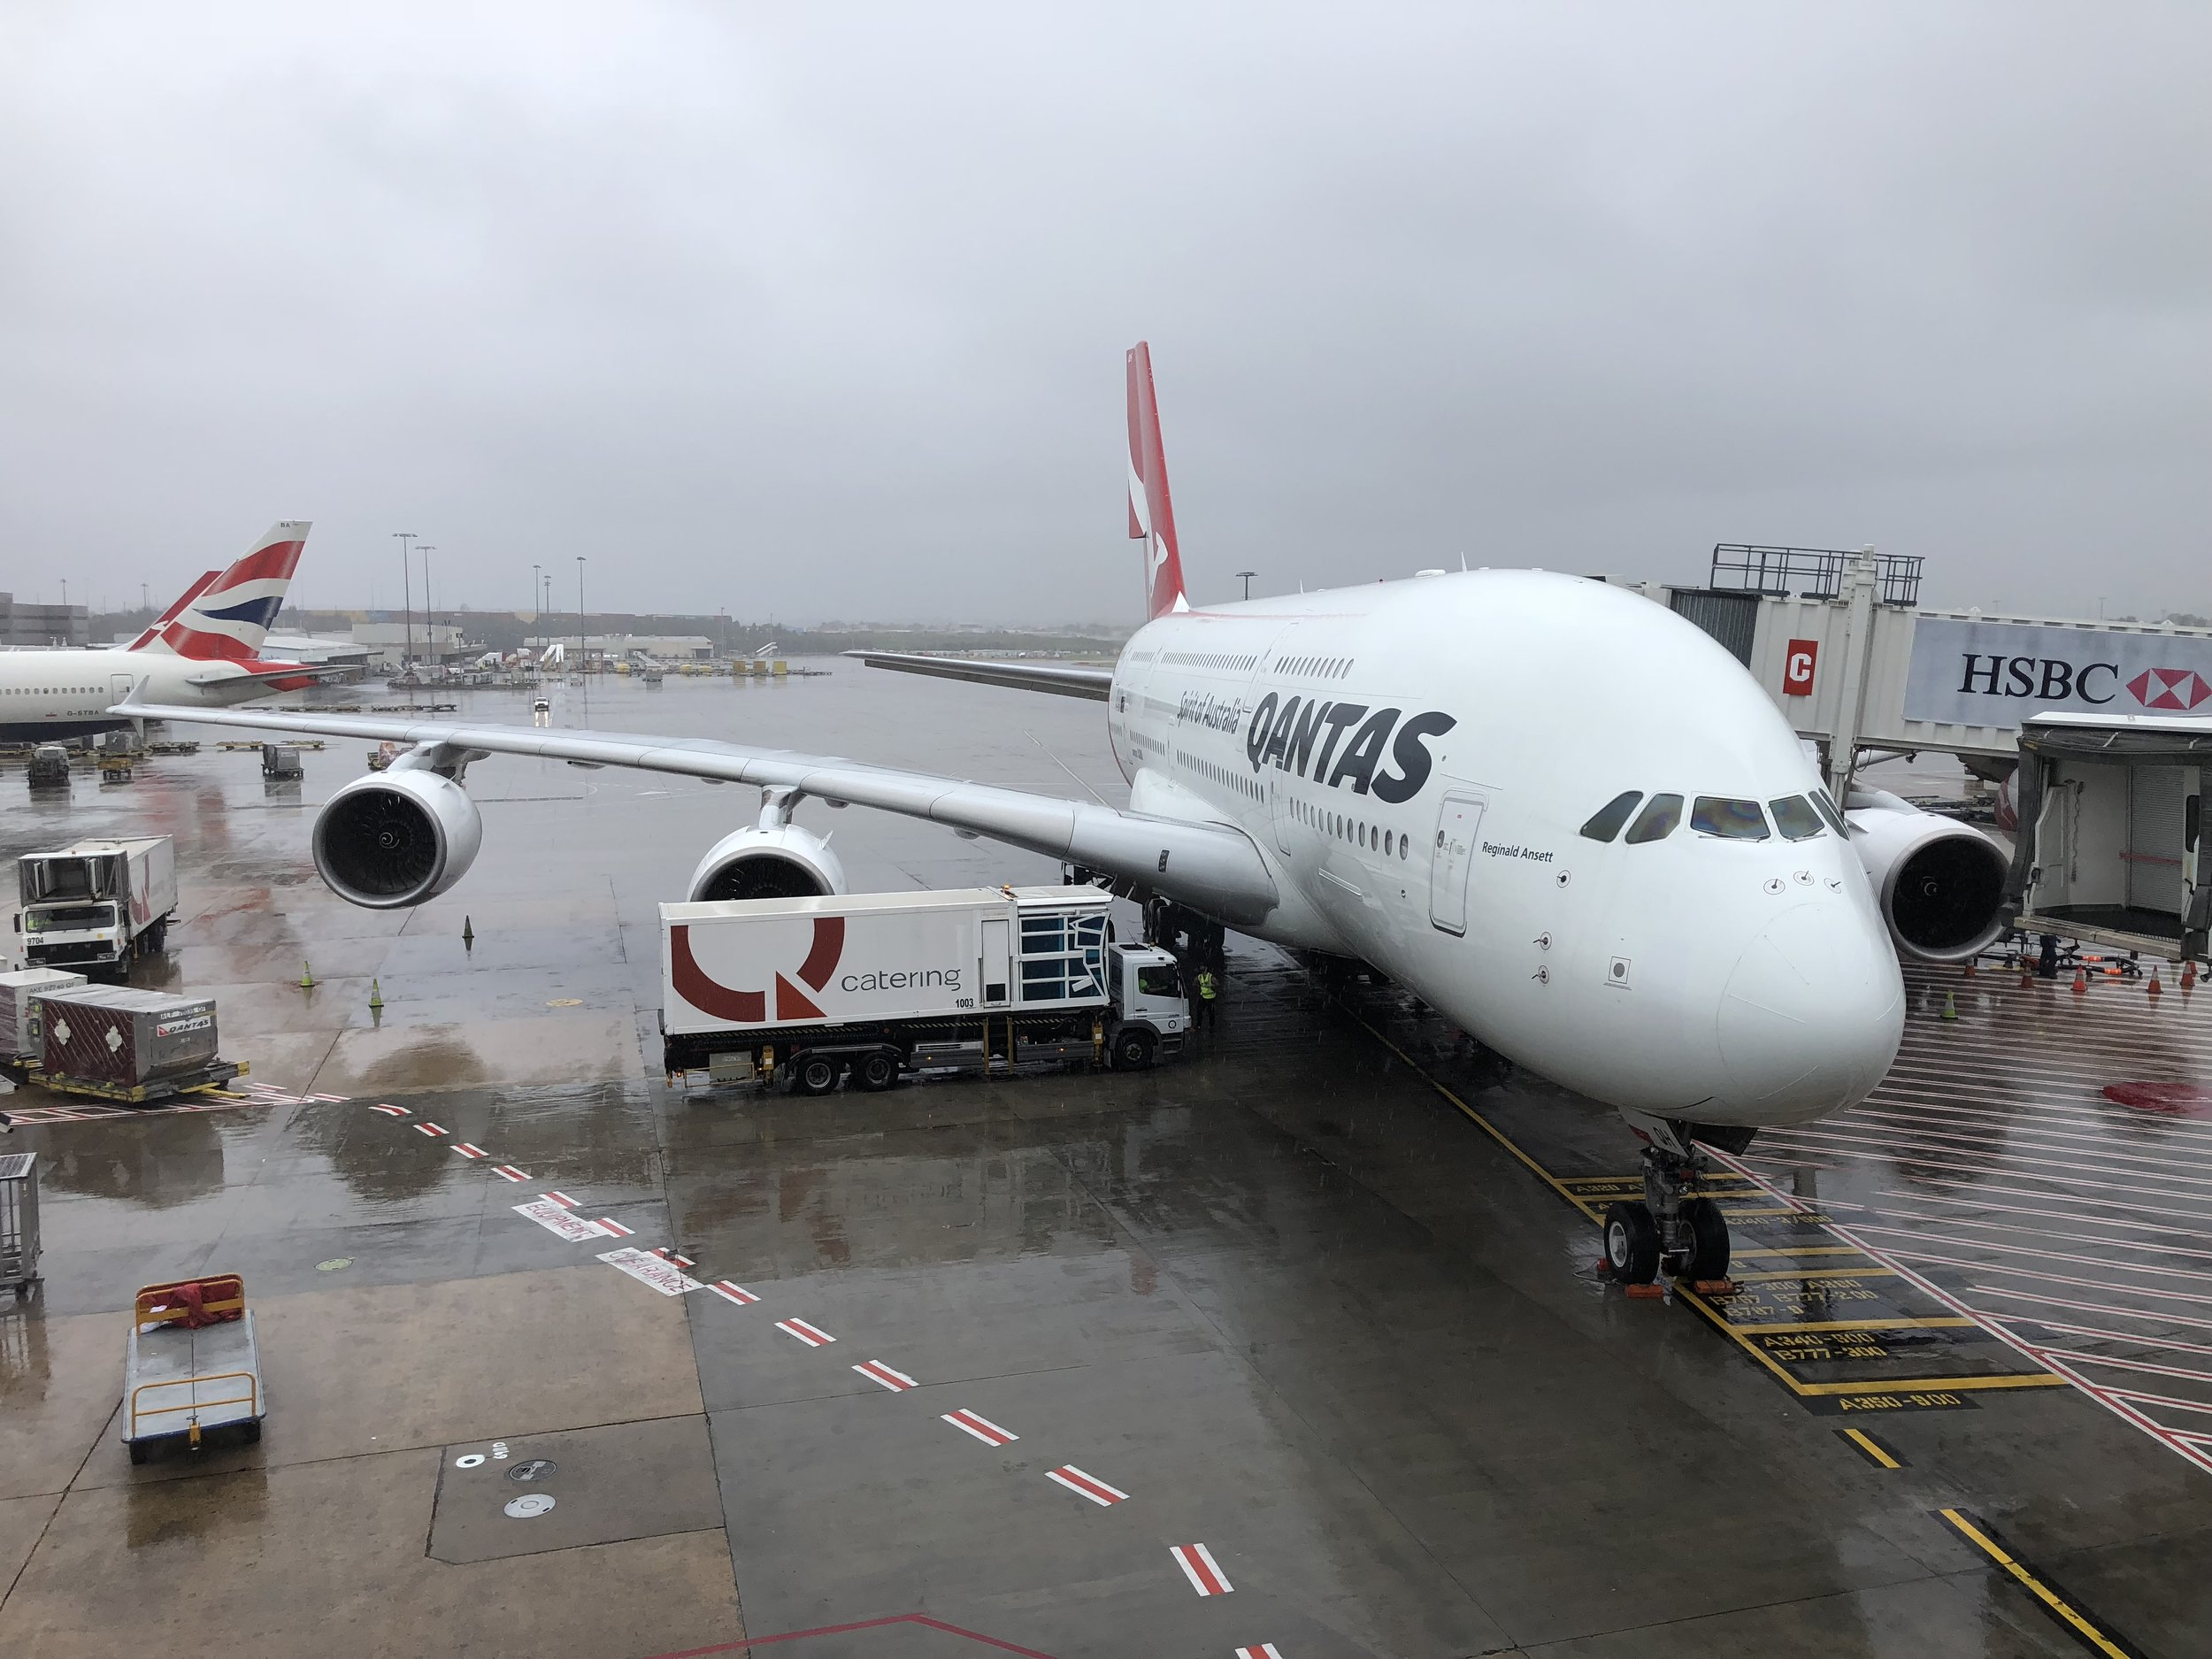 Qantas could fill 80 747s with the trash they produce each year !